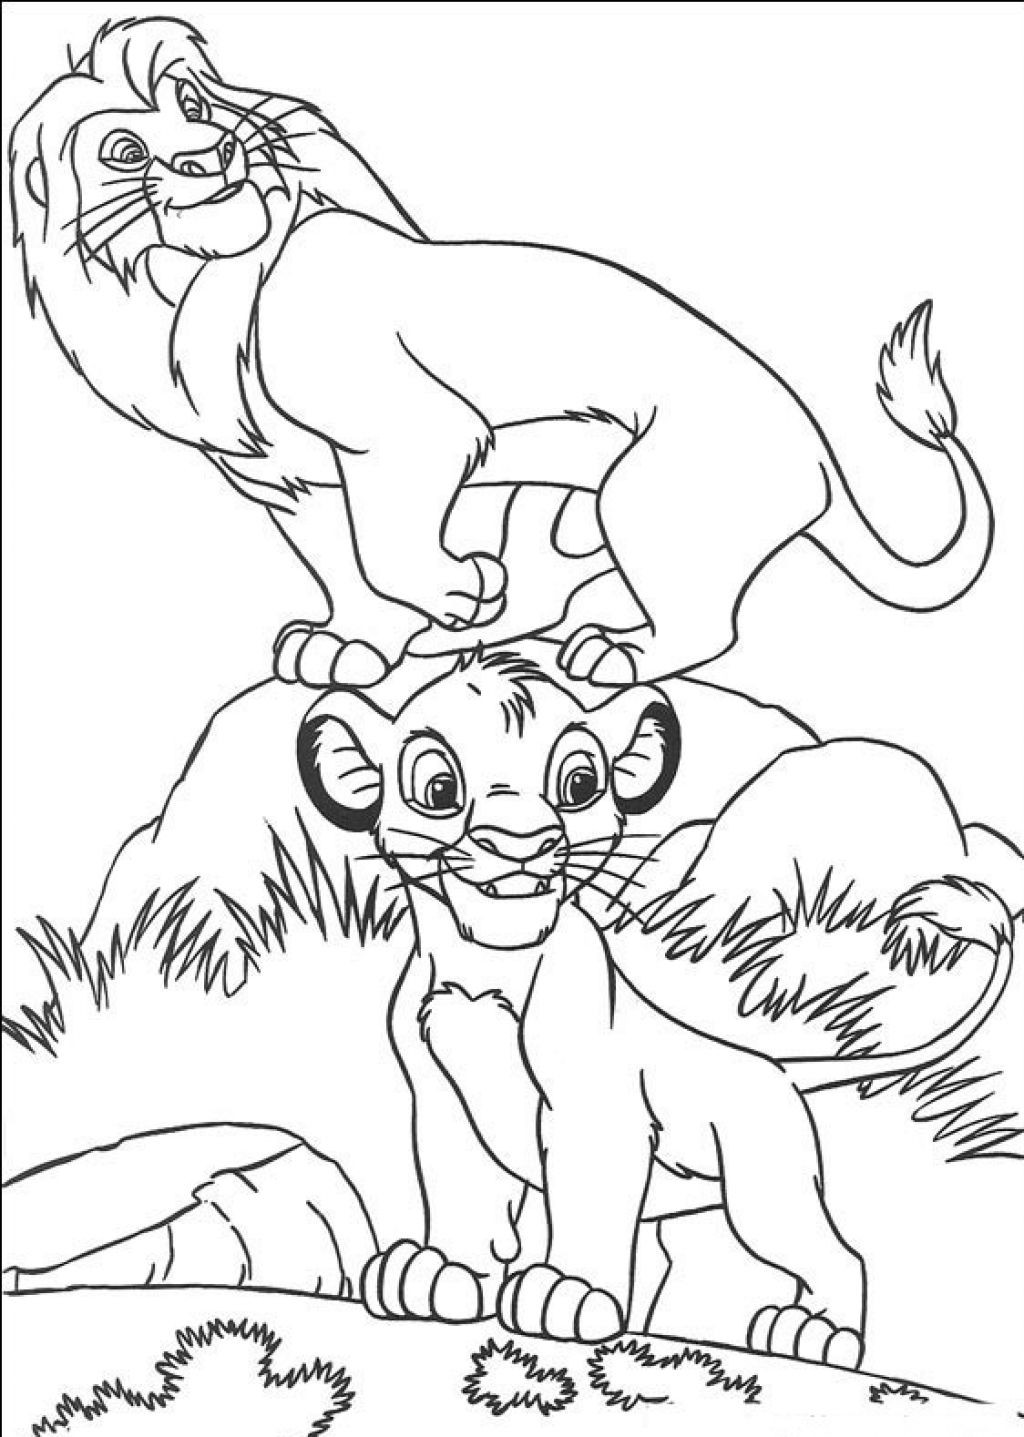 Printable Coloring Books For Toddlers  Free Printable Simba Coloring Pages For Kids